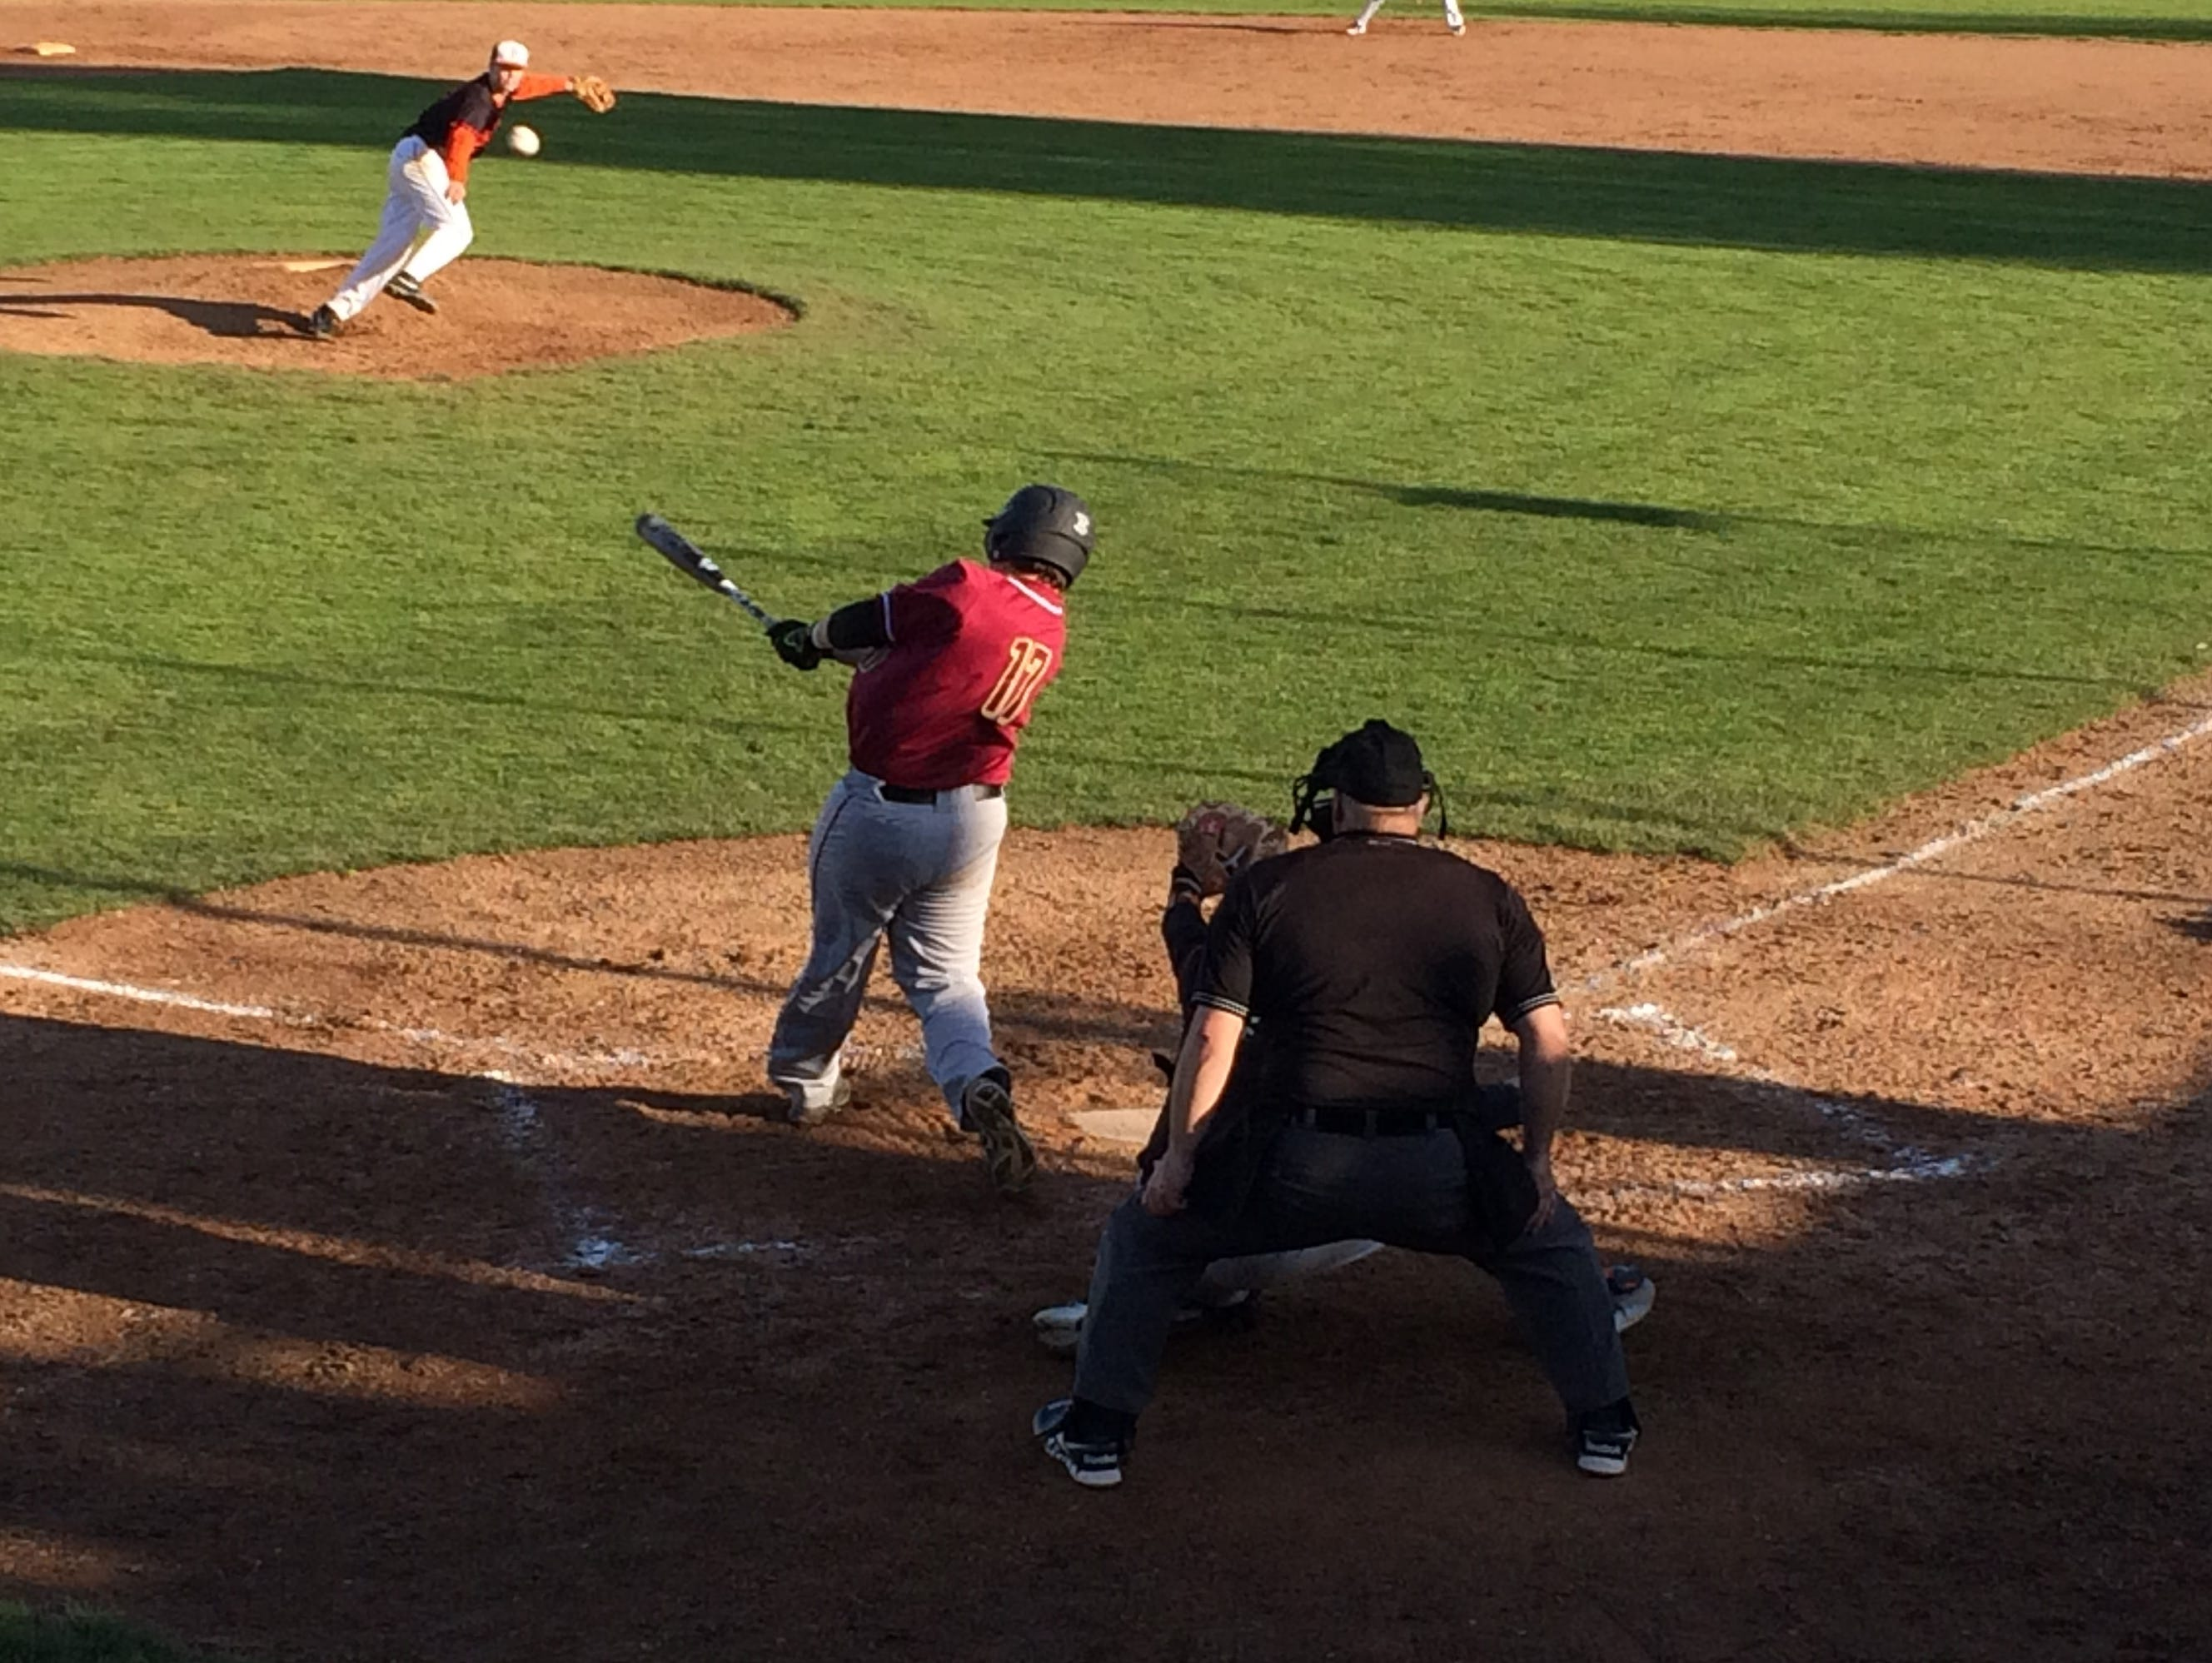 Southridge's Parker Stidham hits a home run in the sixth inning to give the Skyhawks the lead over Beaverton.